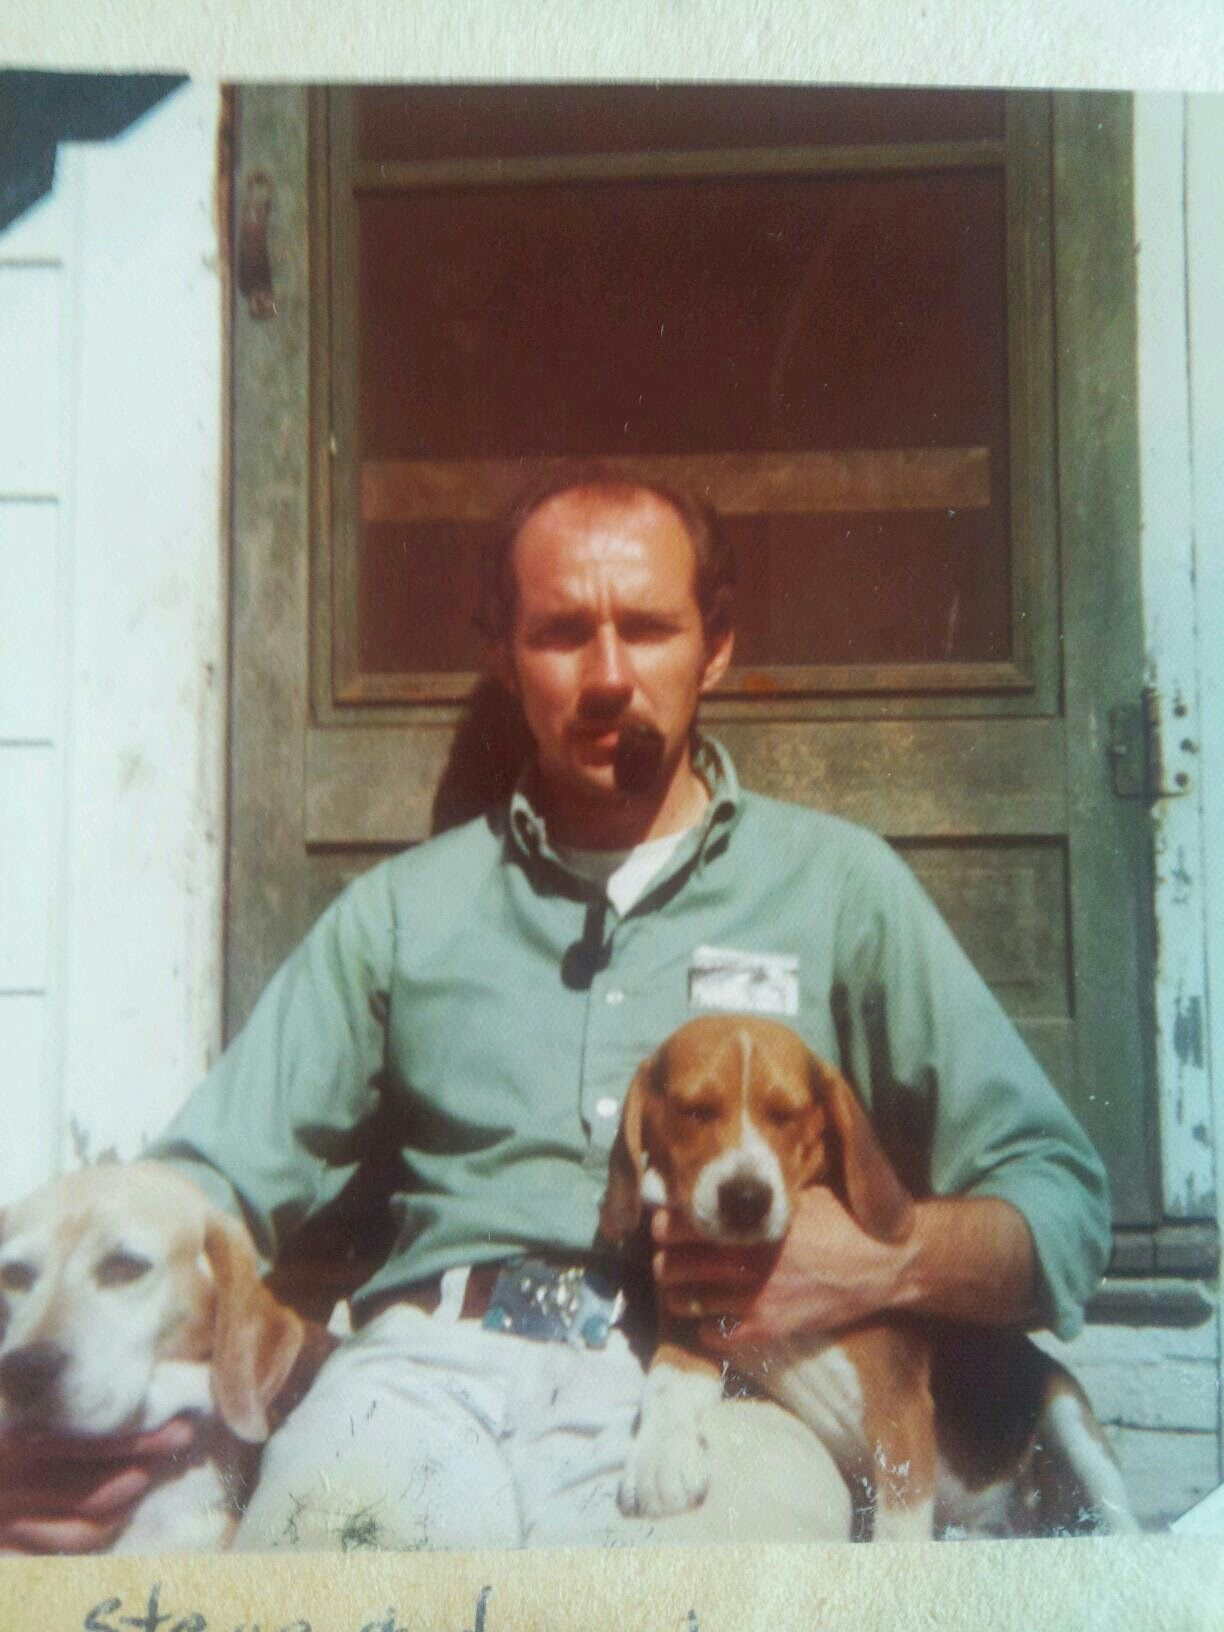 Dad and dogs 1971.  Moonshot and Apollo.  My parents first kids.